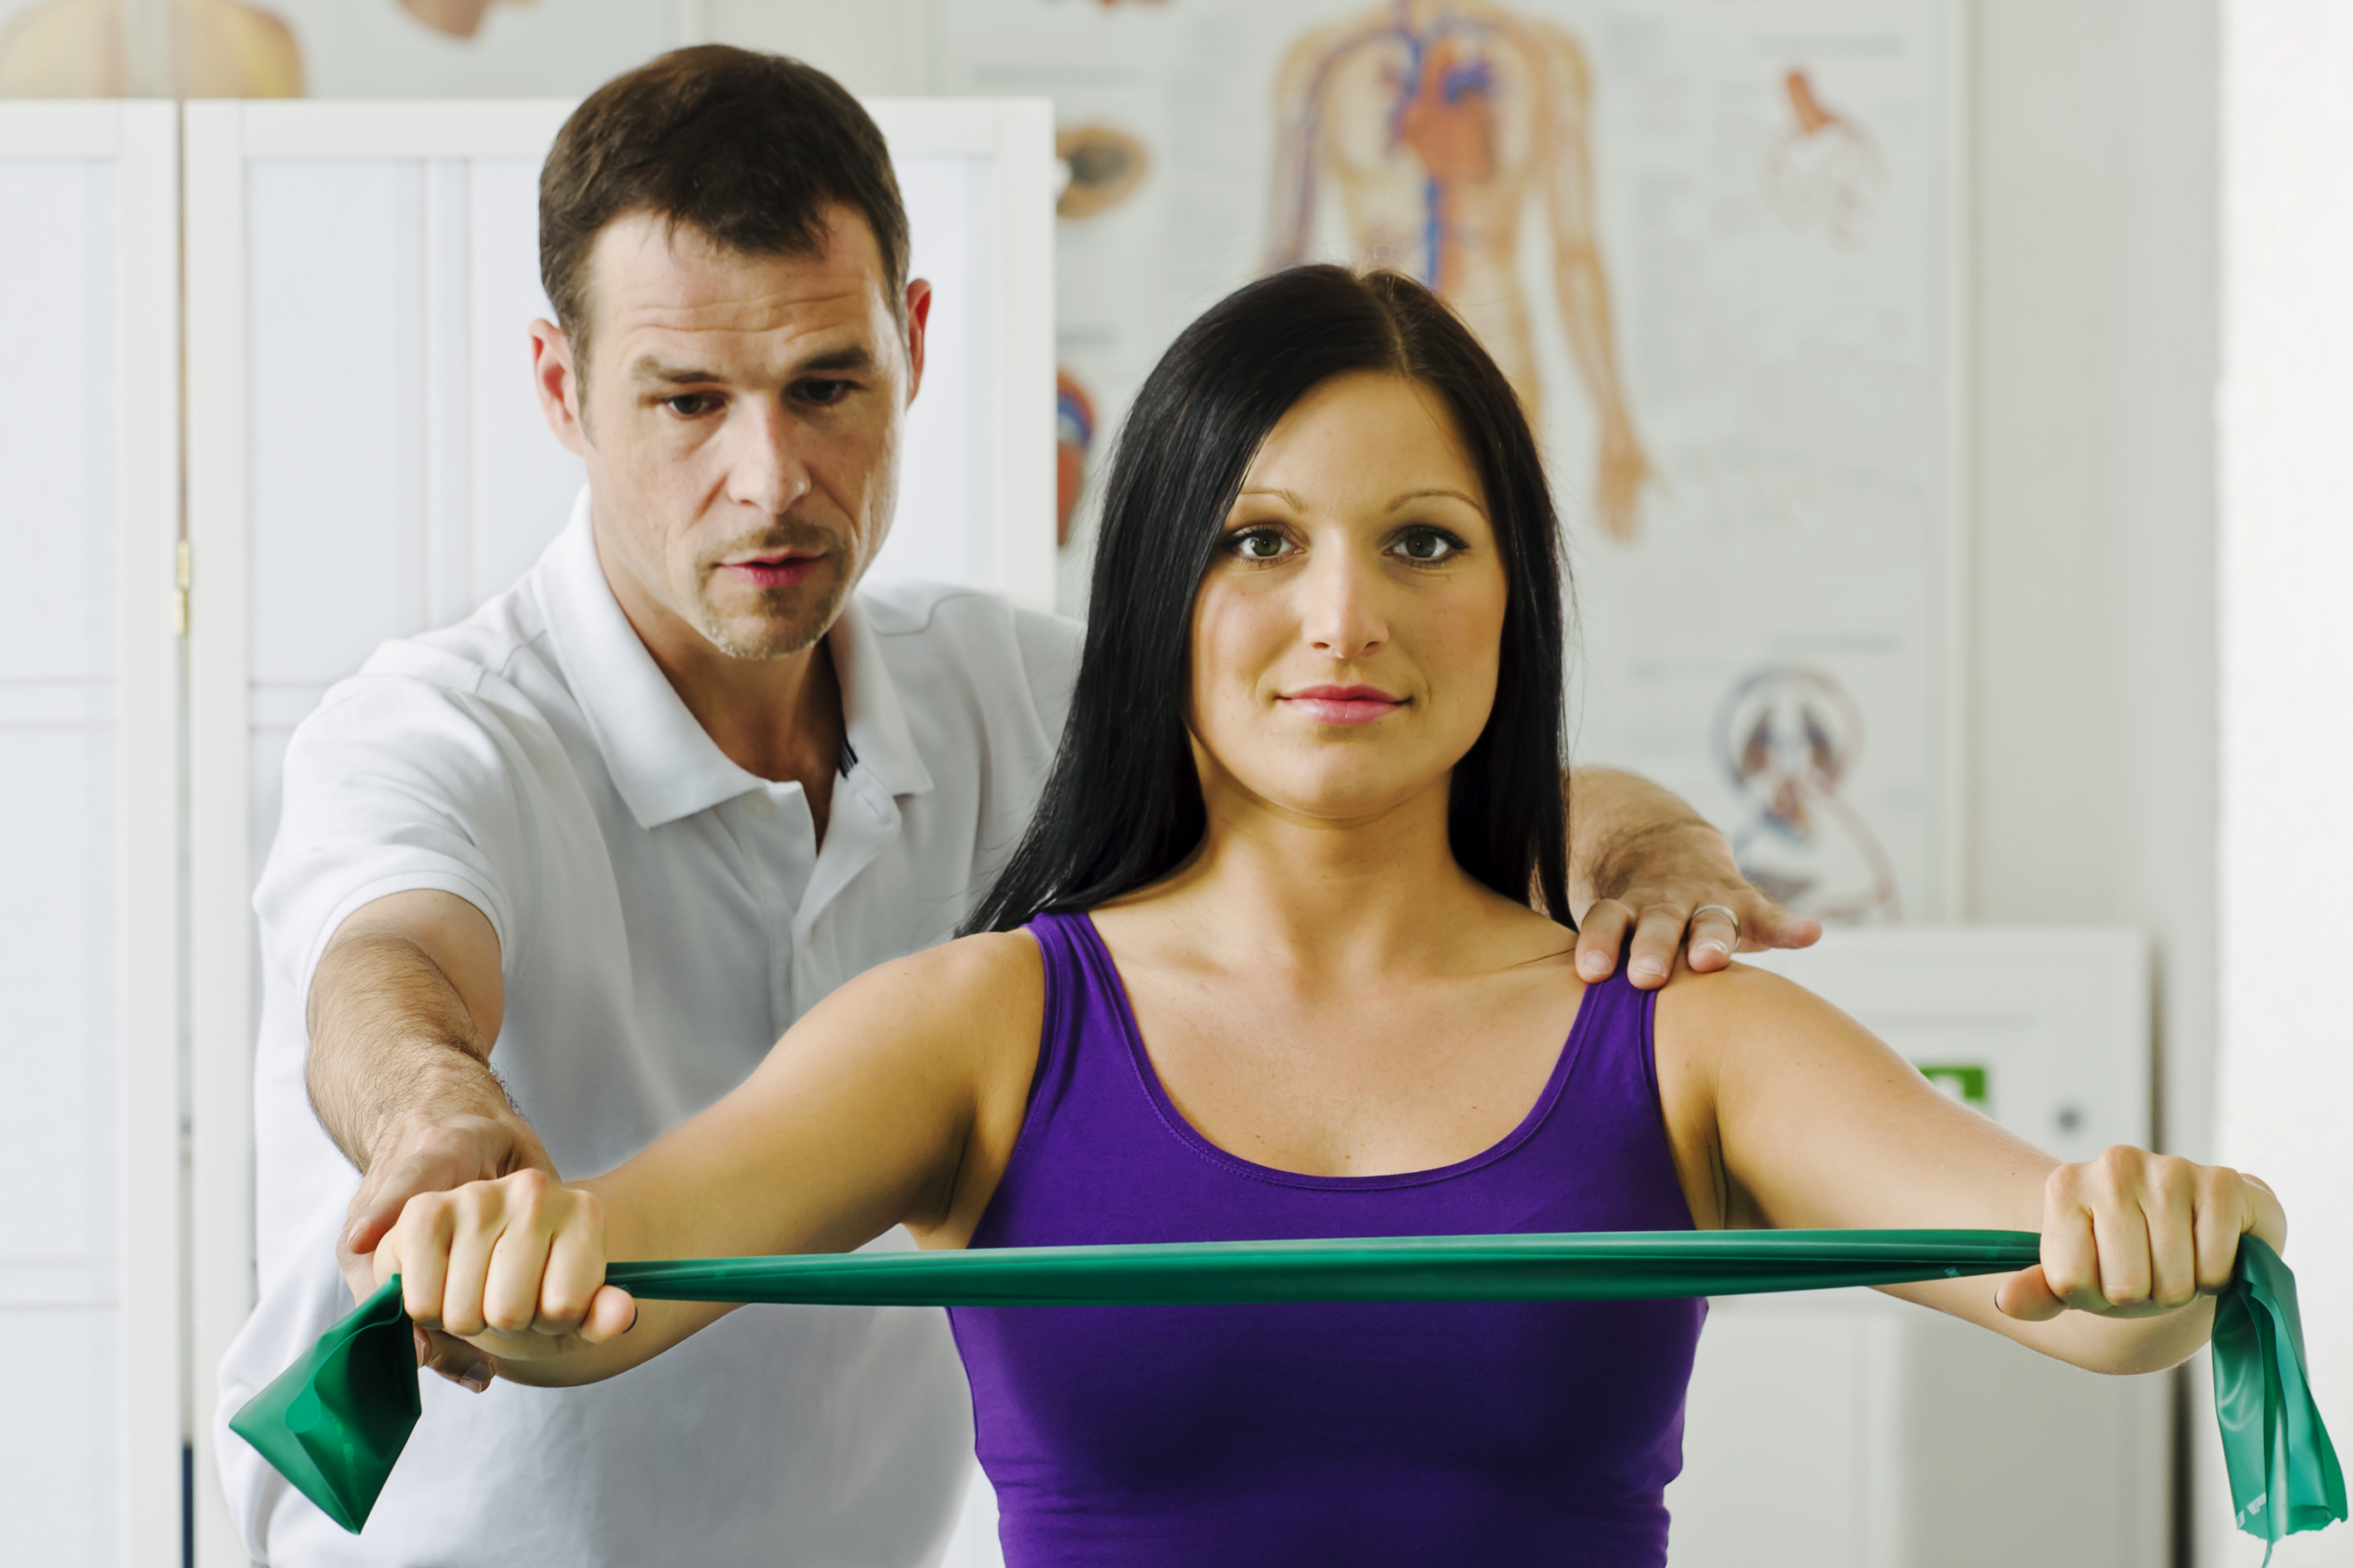 Physiotherapy, Rehabilitation and Exercise Equipment